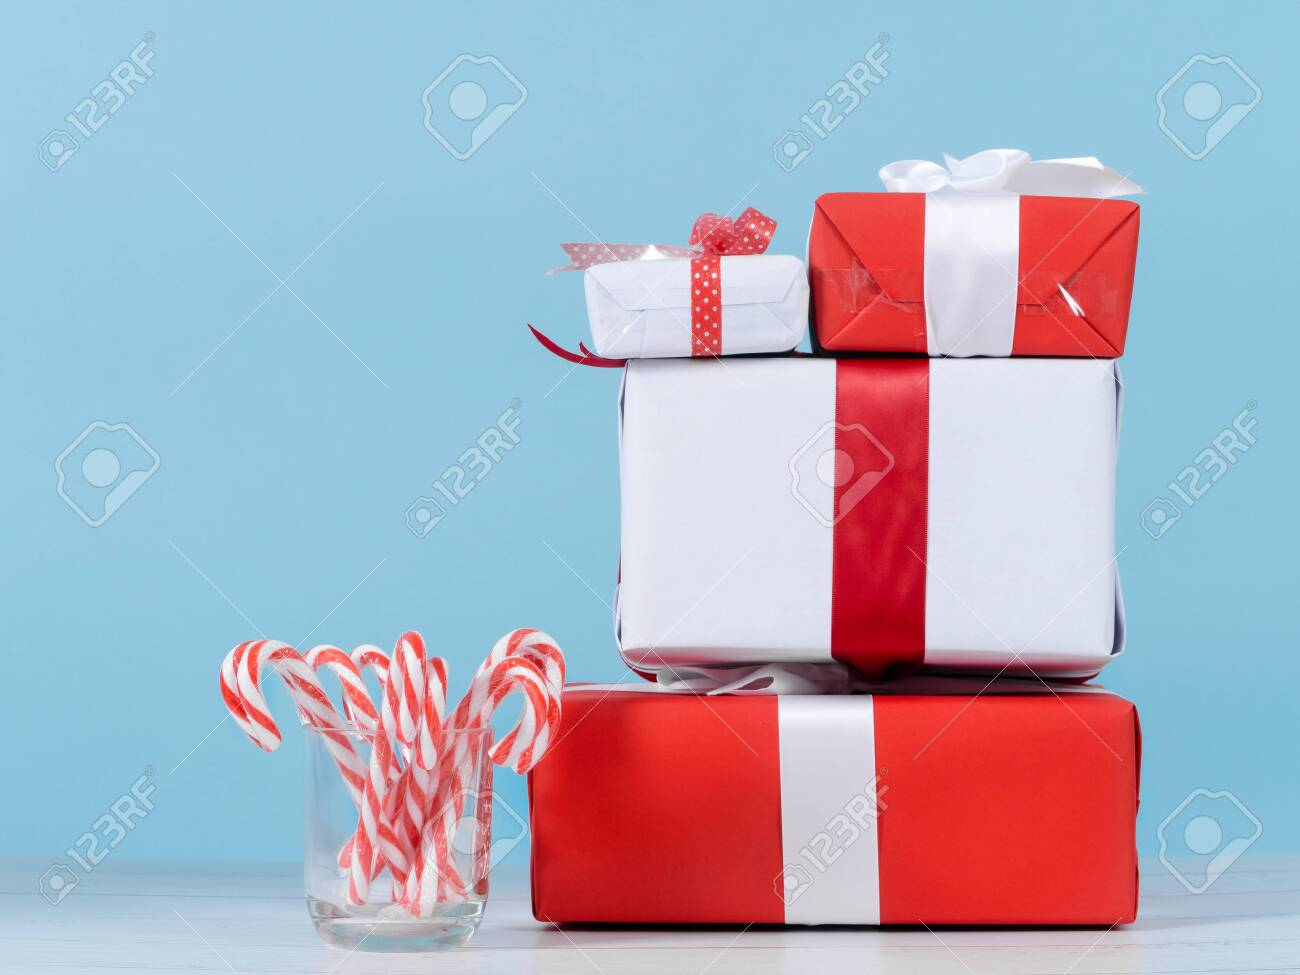 Red and white gift boxes and Christmas candy sticks on wooden table with blue wall. - 135085559